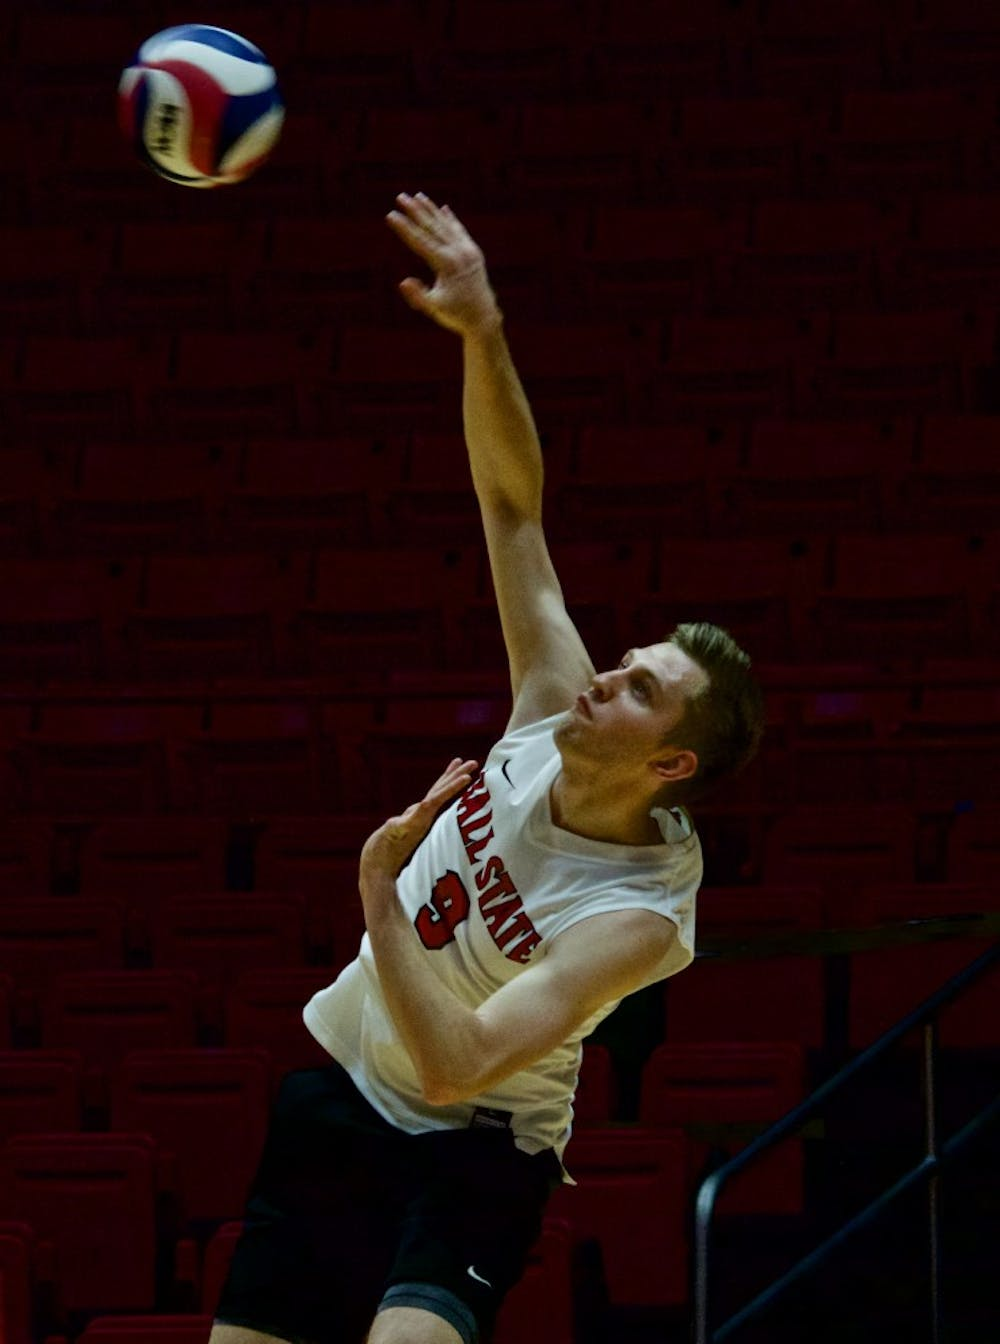 Issues in consistency continue for Ball State Men's Volleyball in loss to No. 5 BYU